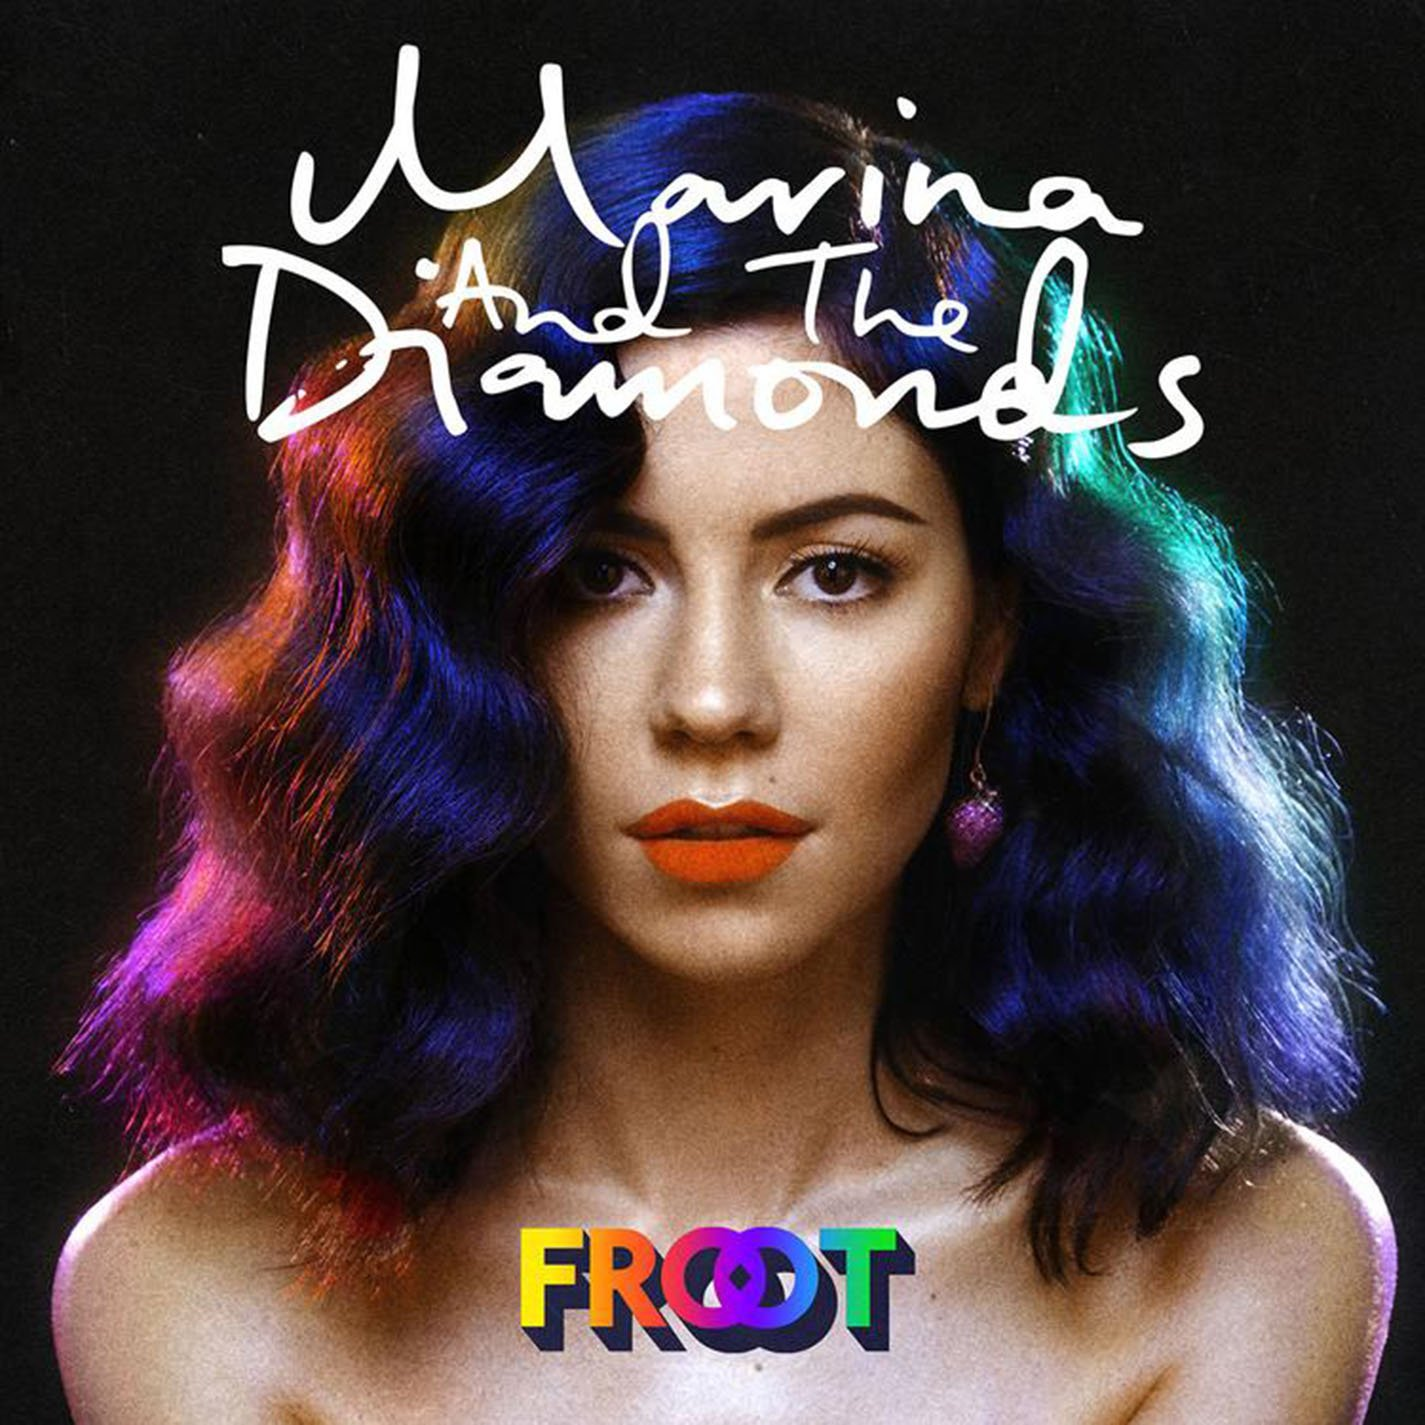 Cassette : Marina and the Diamonds - Froot (Cassette)